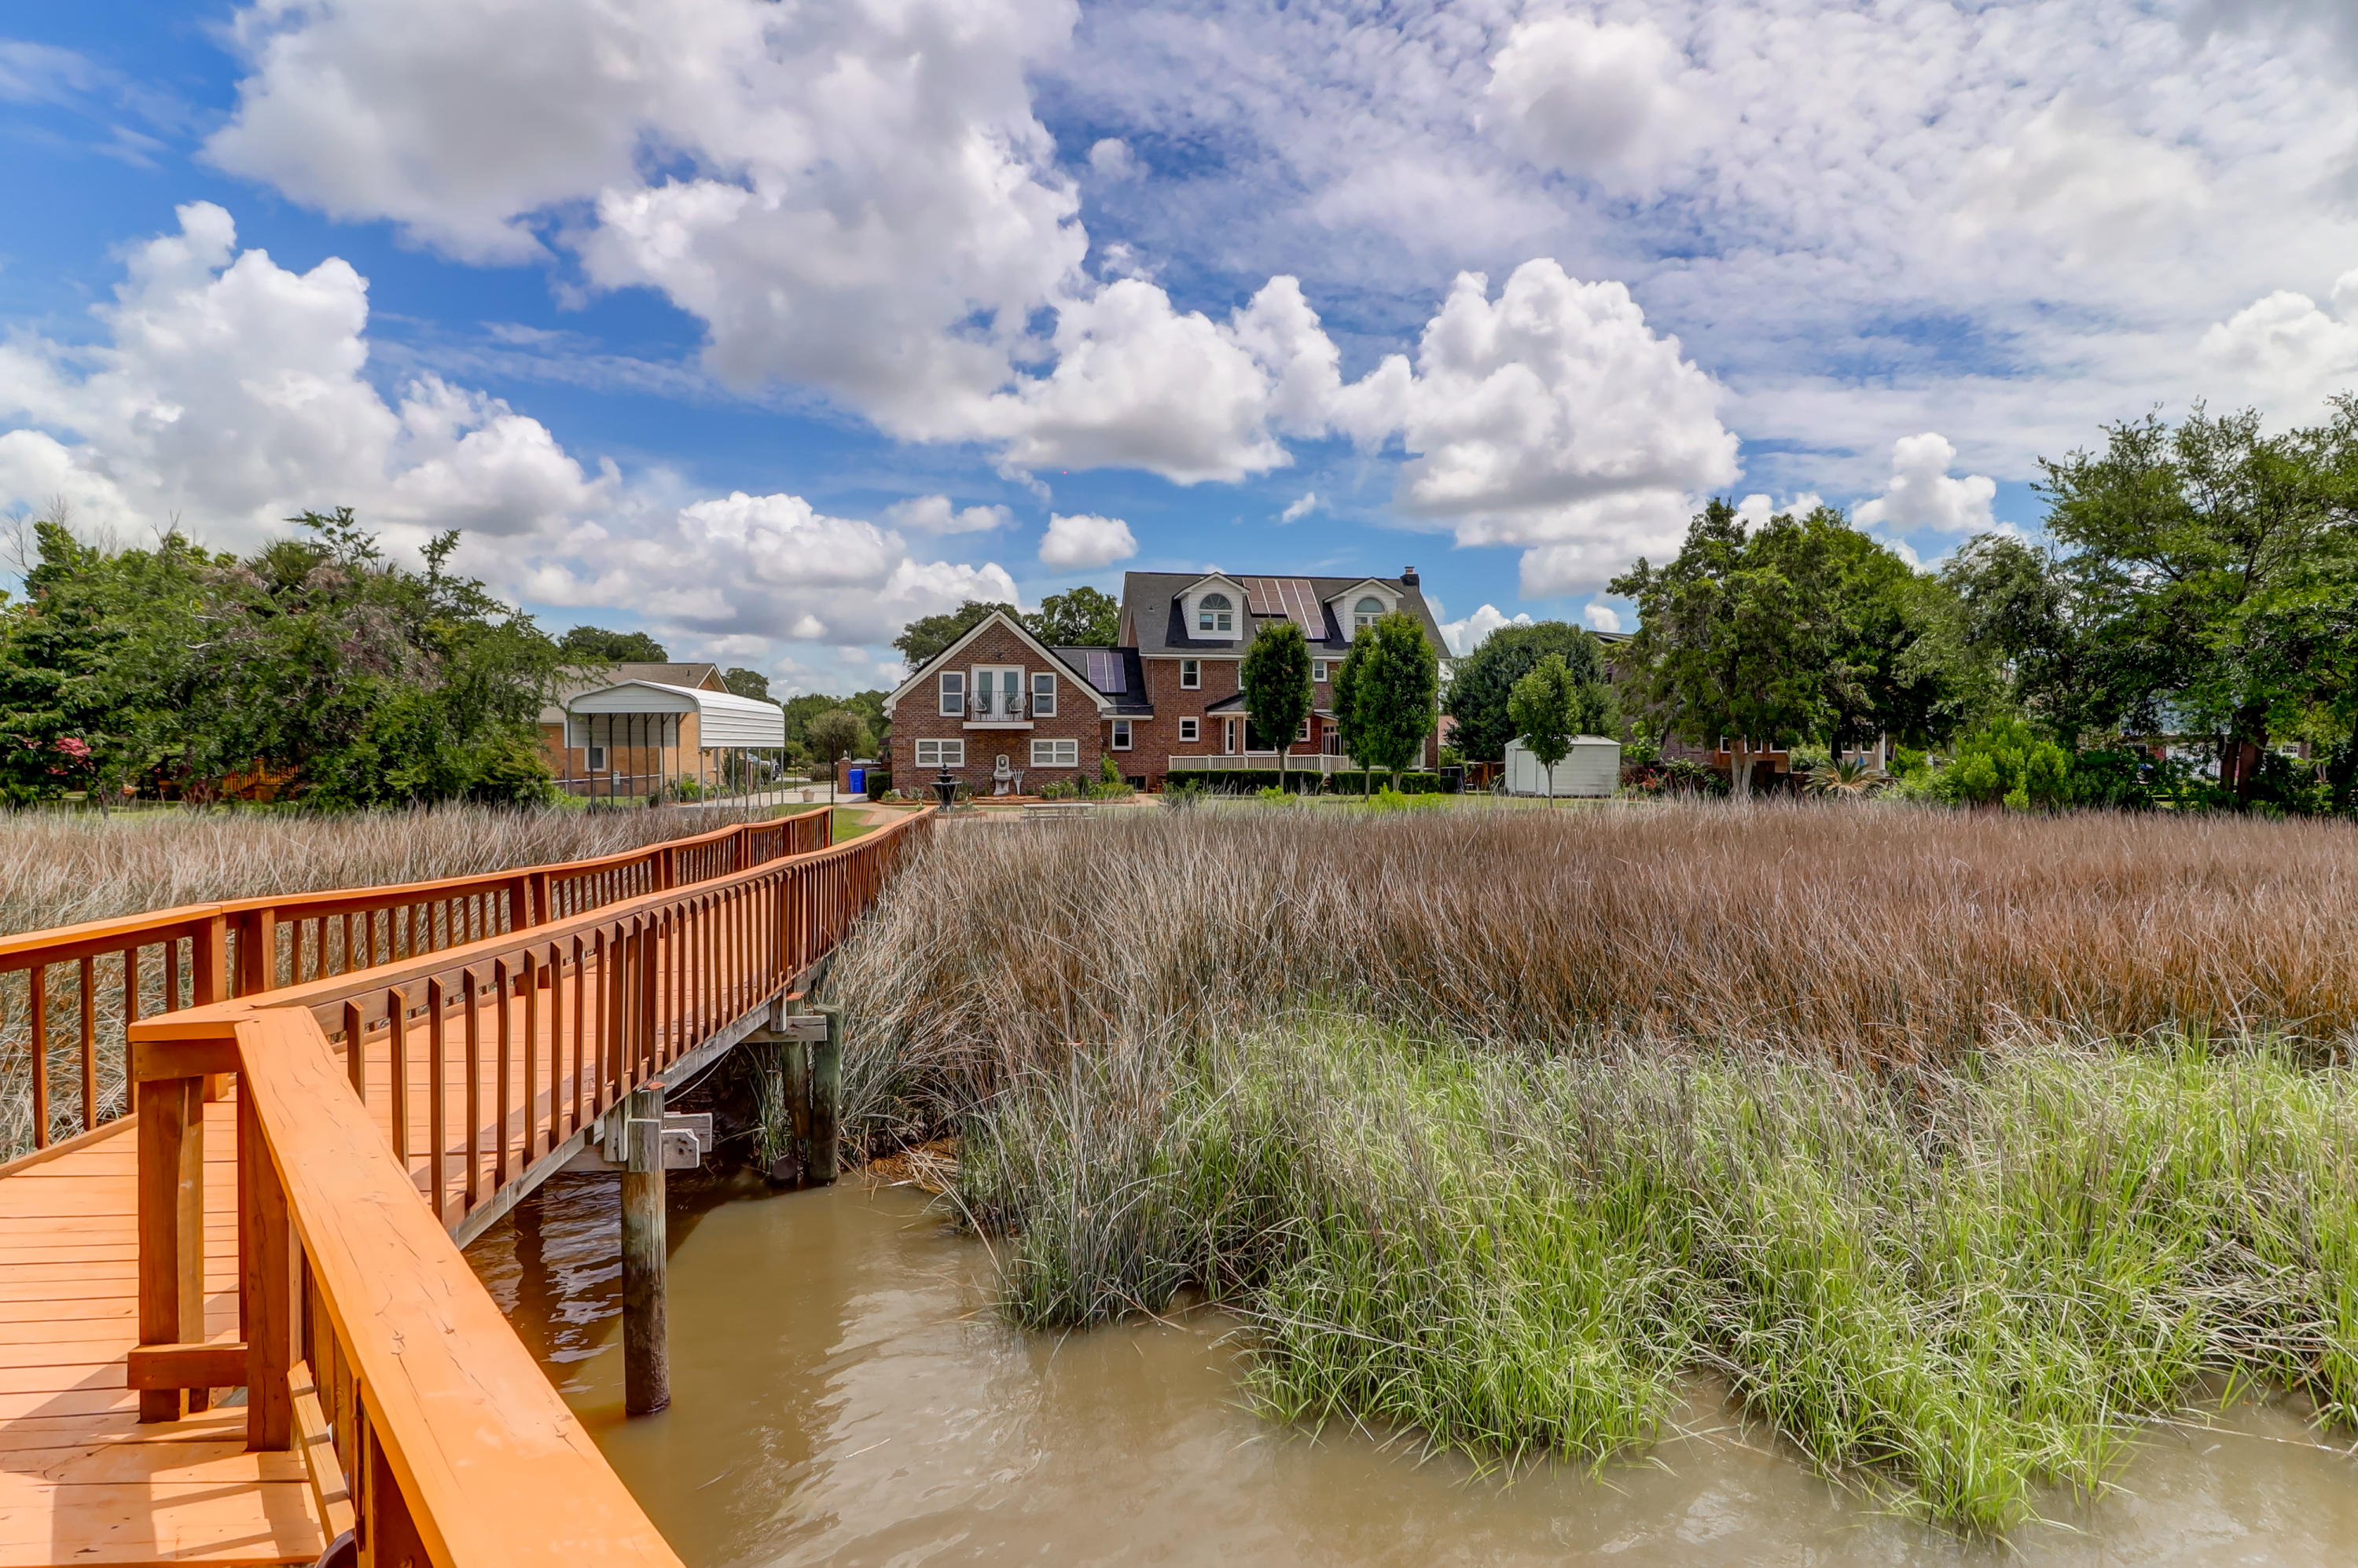 5289 Waterview Drive, North Charleston, 29418, 4 Bedrooms Bedrooms, ,3 BathroomsBathrooms,Residential,For Sale,Waterview,21013789